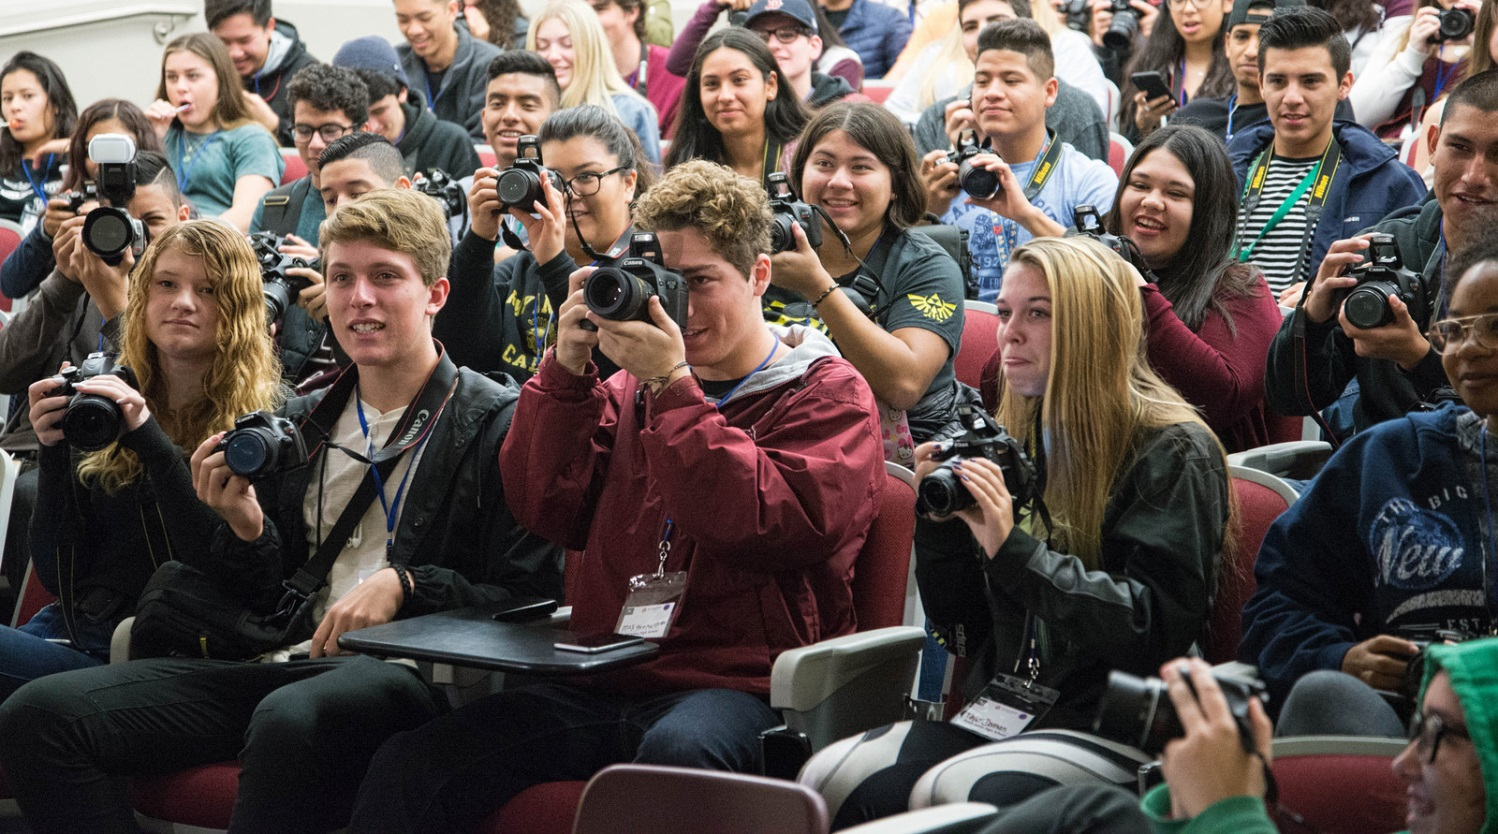 Image for High school students will focus on photography careers at Photo 360 event article